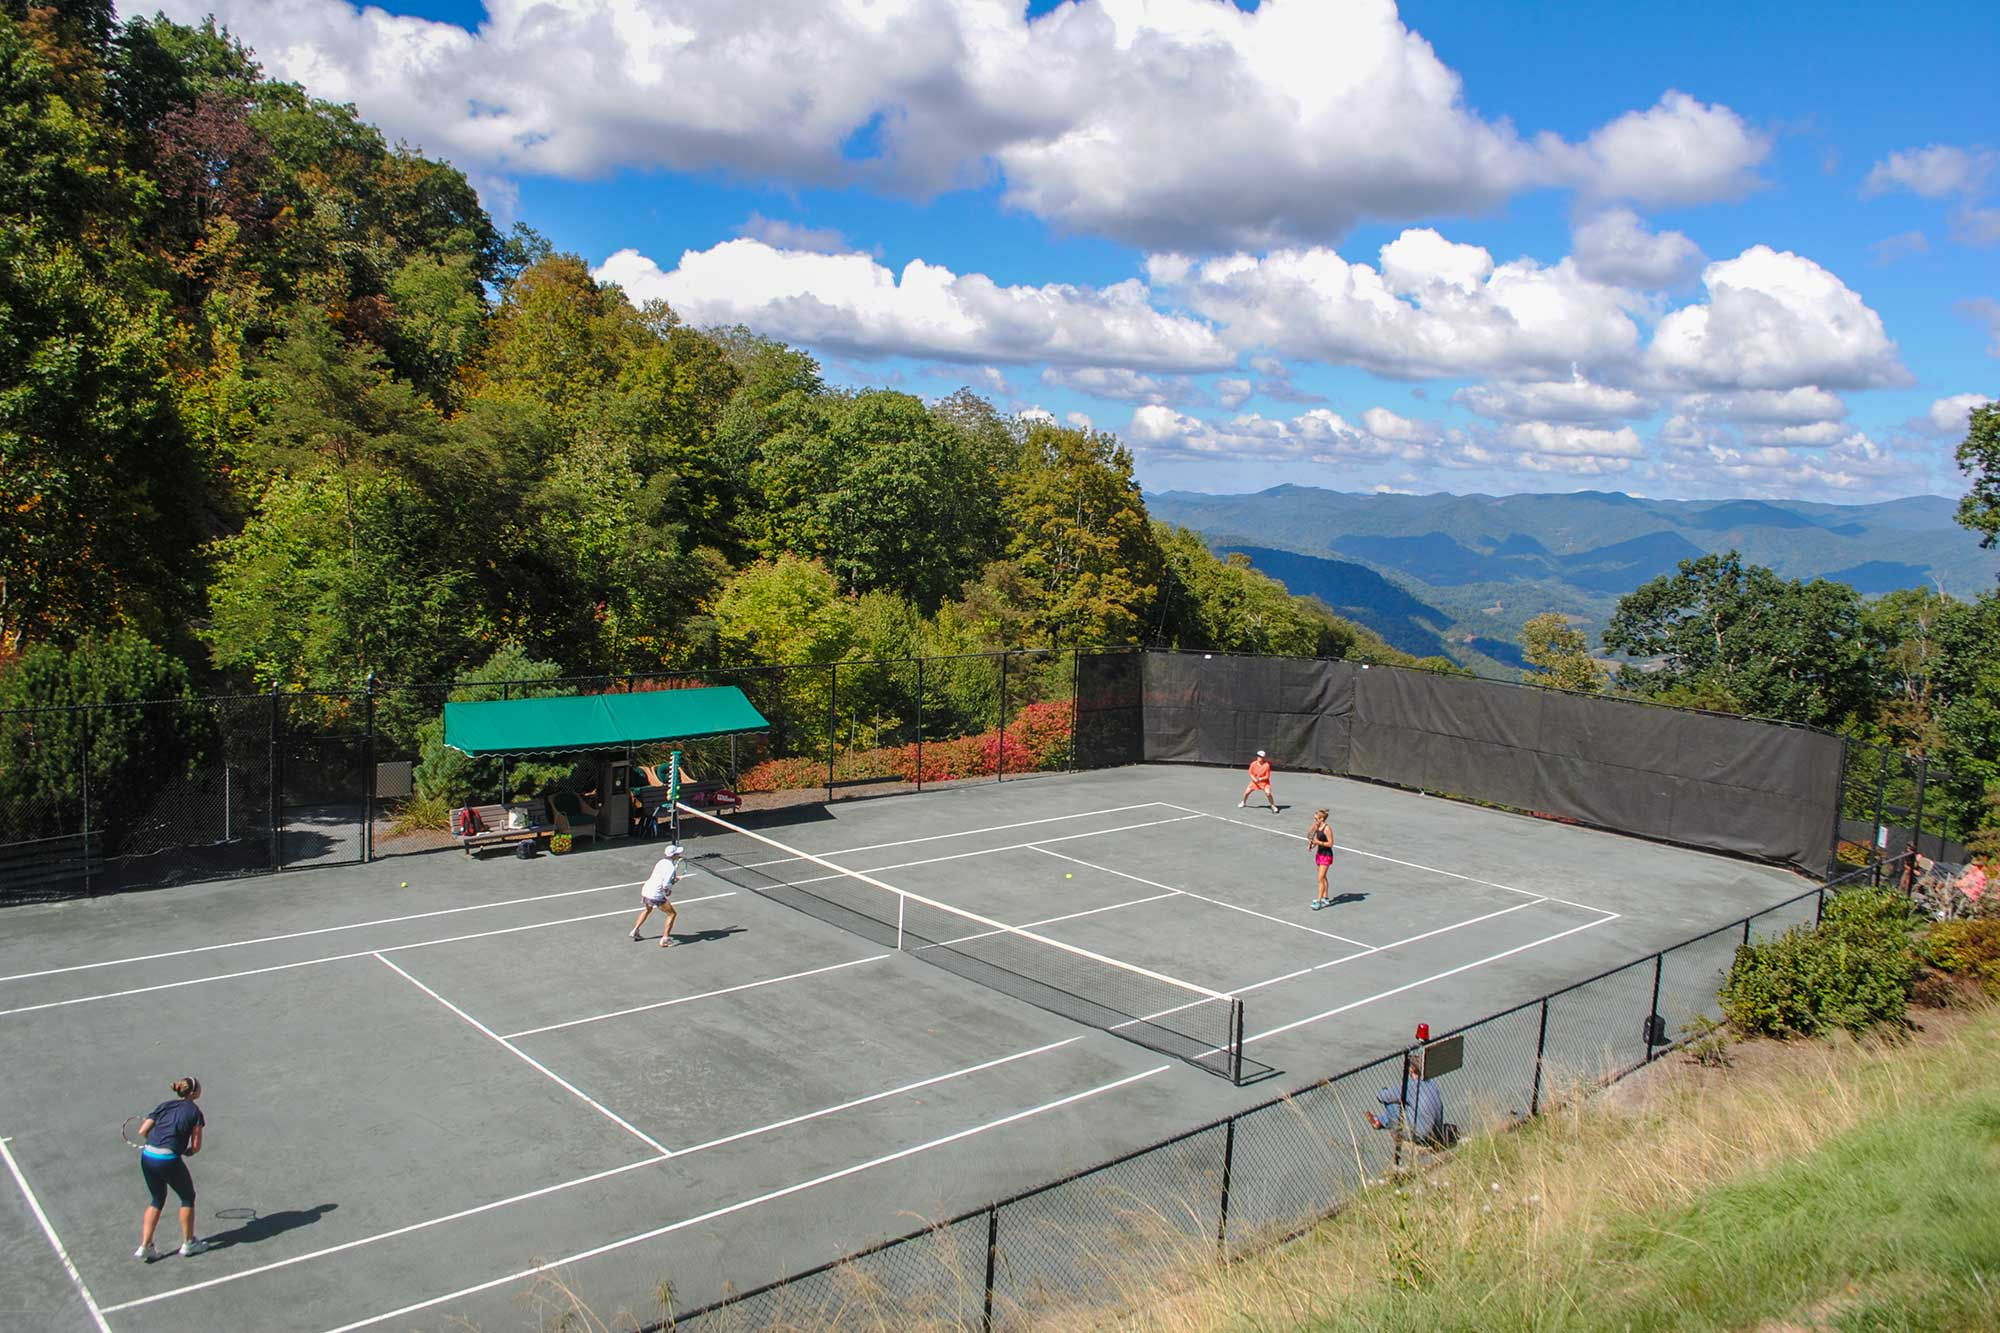 scenic view at mountain air country club tennis court